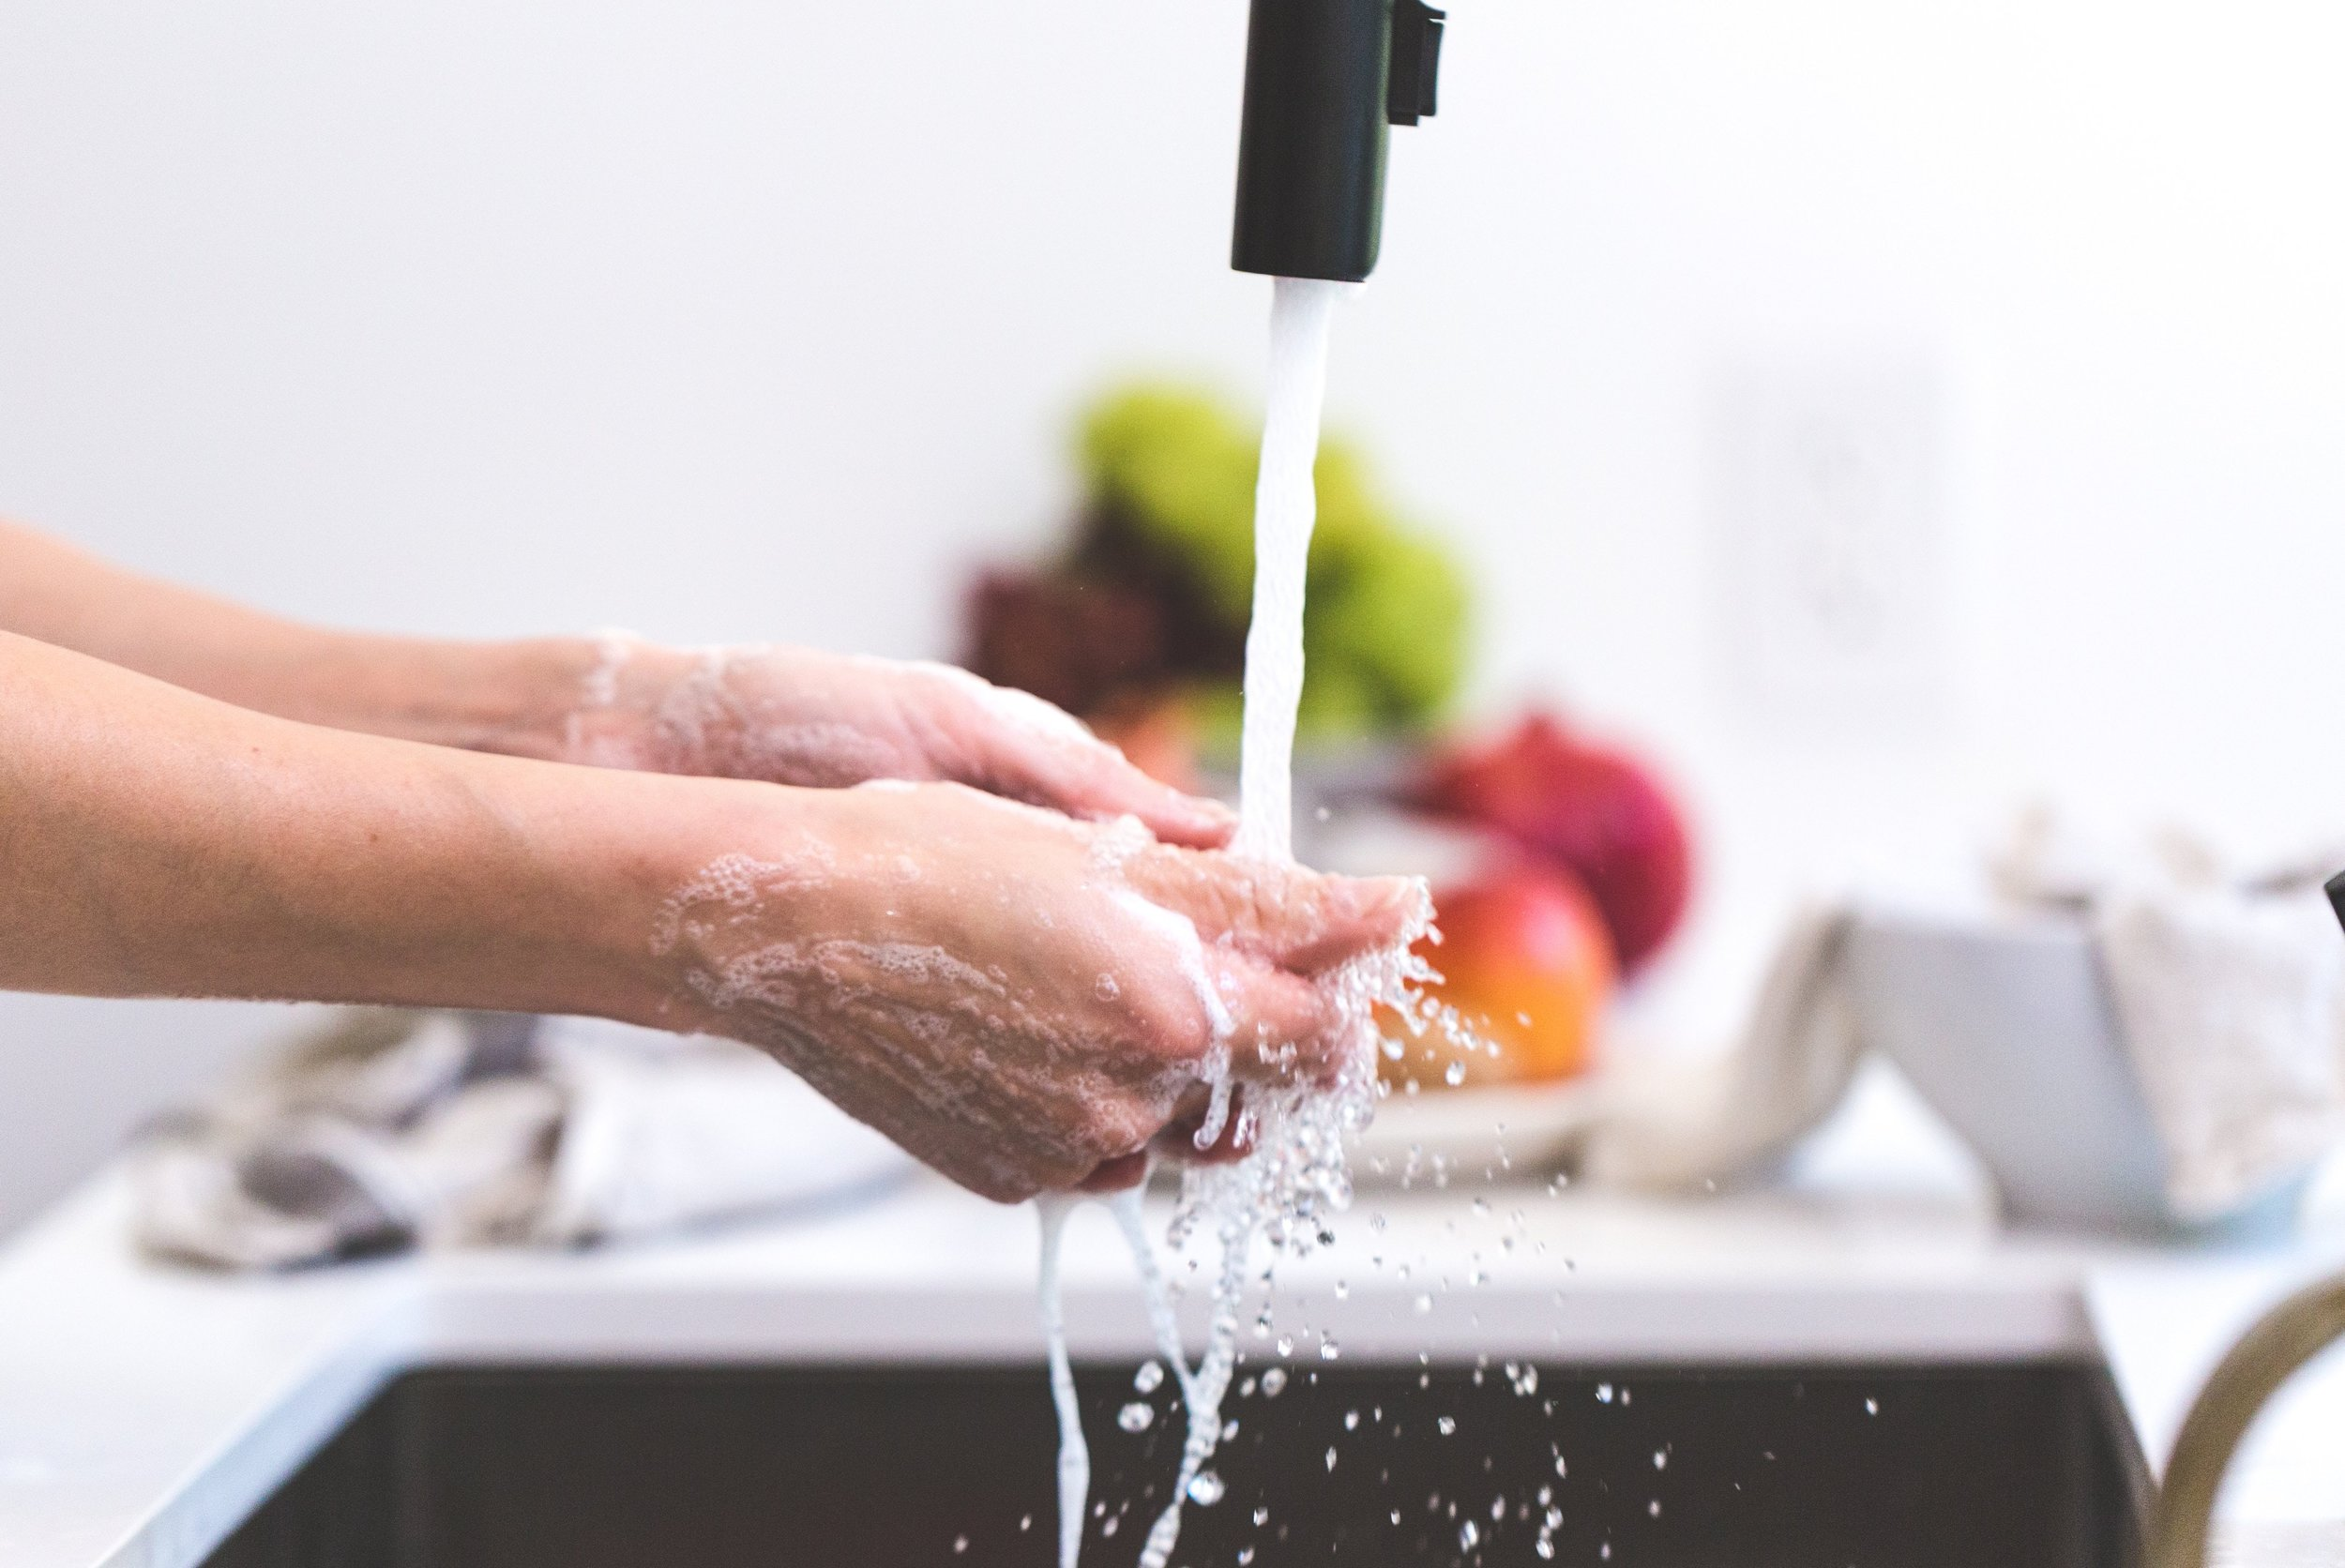 Sinks, Hardware, Faucets and other Accessories - We offer sinks, hardware, faucets, and other accessories to complete your needs. If we don't offer it out sister store, Builder's Warehouse should have all your other needs such as tile, showers, flooring, and back splash.